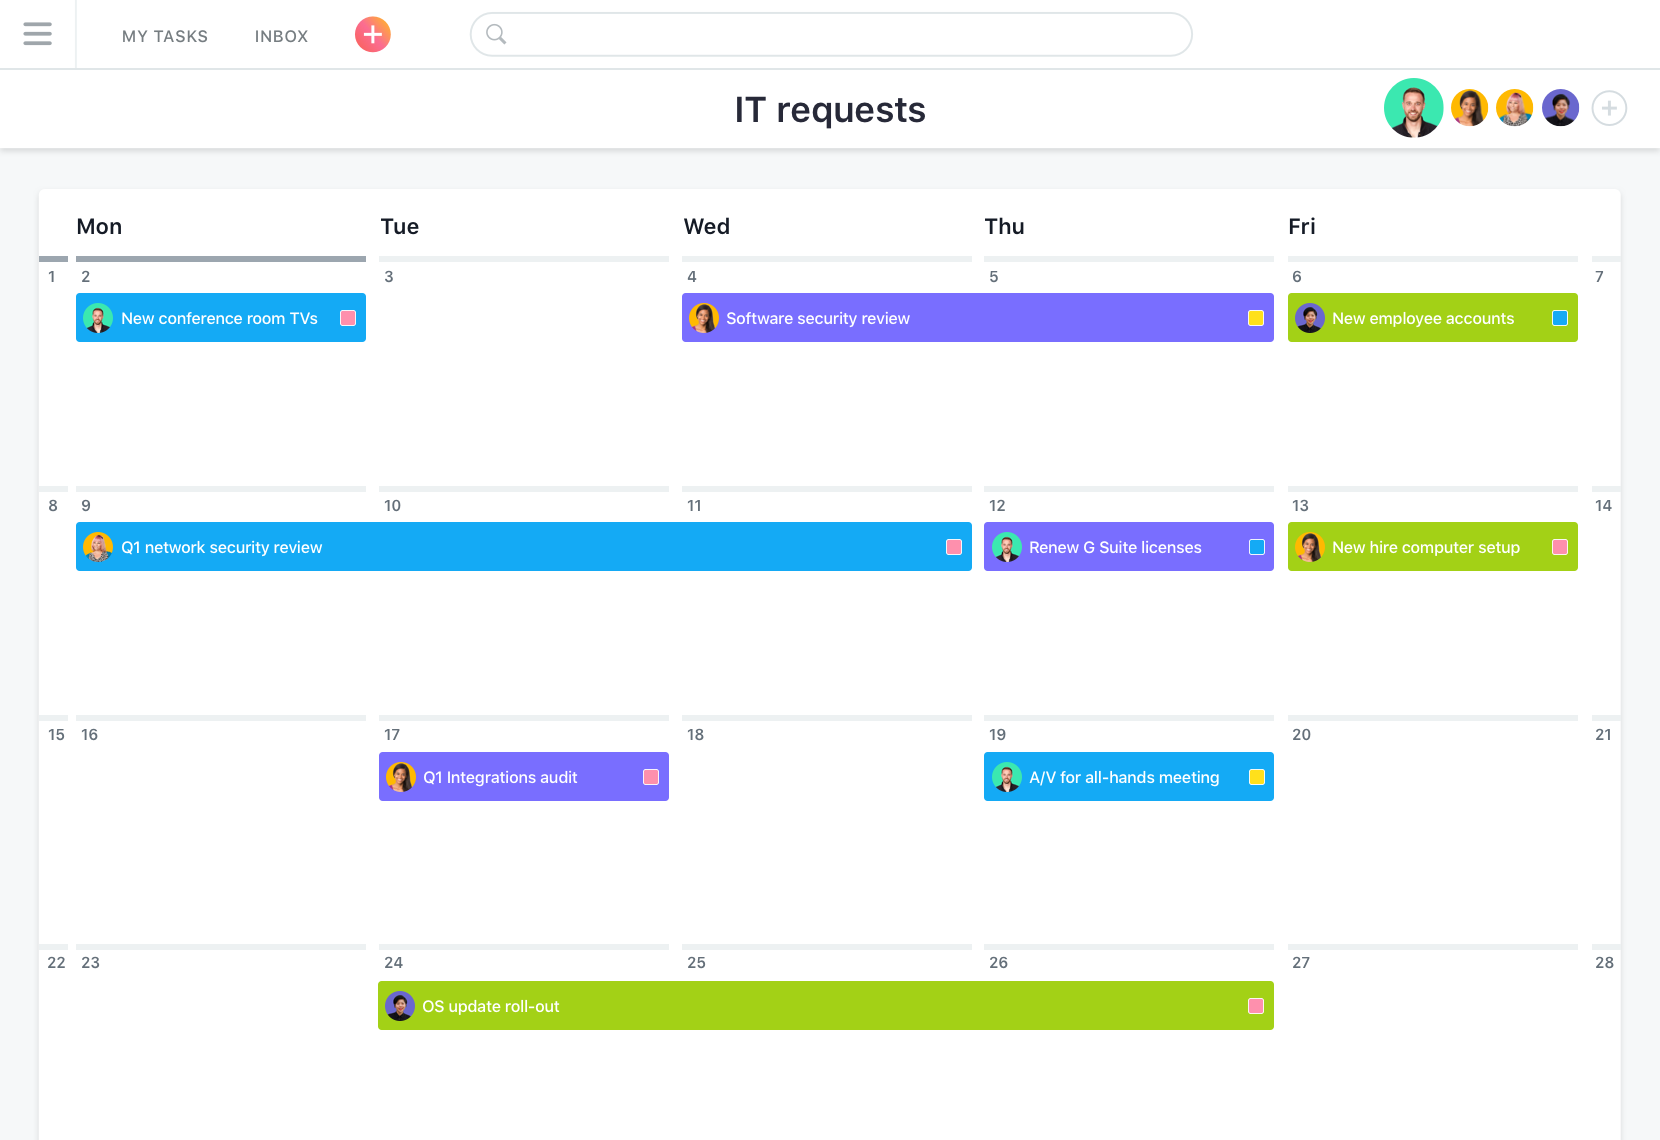 Asana calendar, Asana: Single Sign-On (SSO), Task Manager, Import and export data (CSV, XLS)